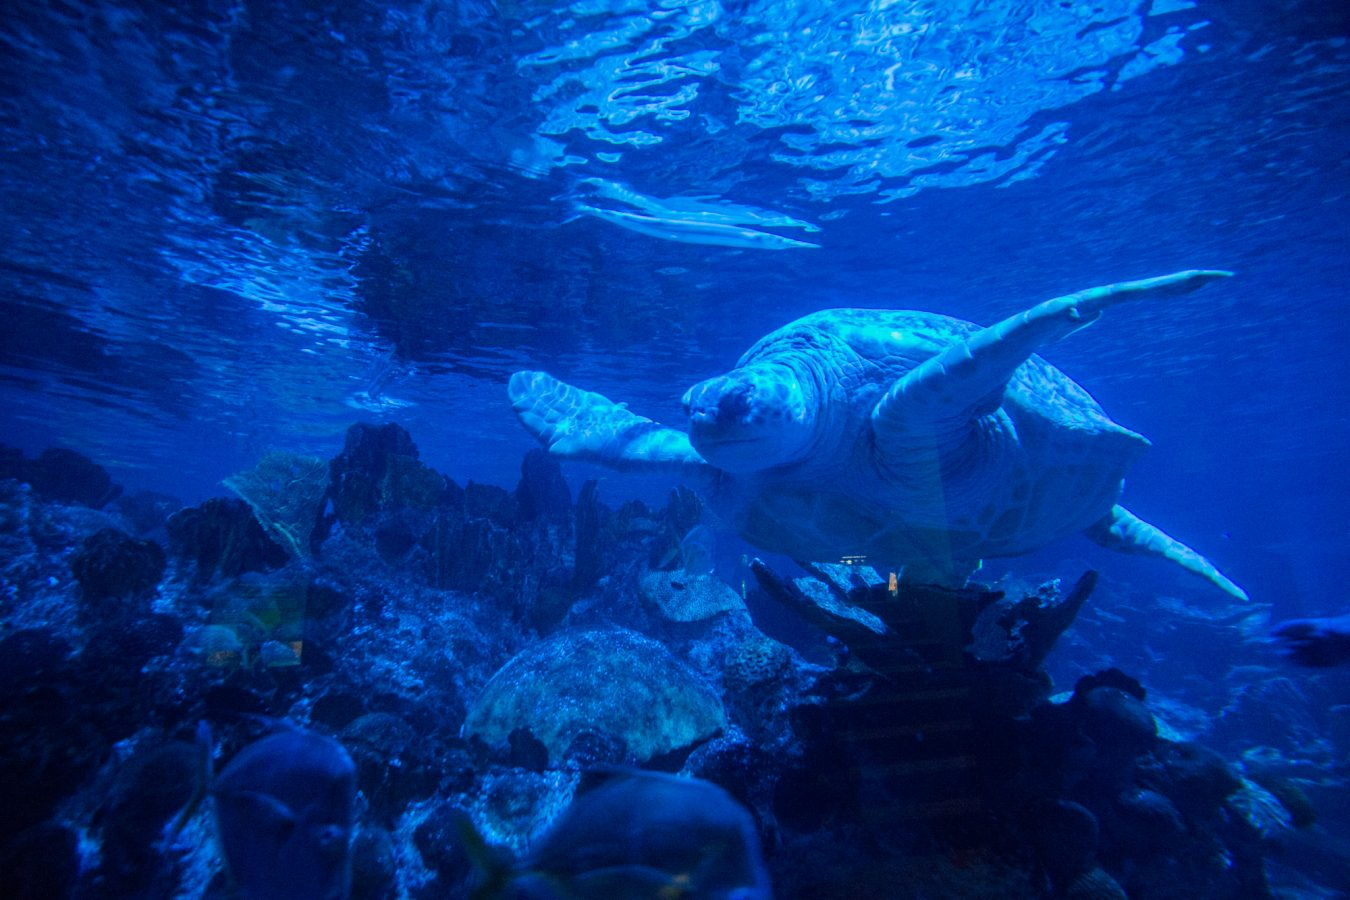 Myrtle the green sea turtle swims in the Giant Ocean Tank under a distinct blue lighting that is meant to replicate the moon